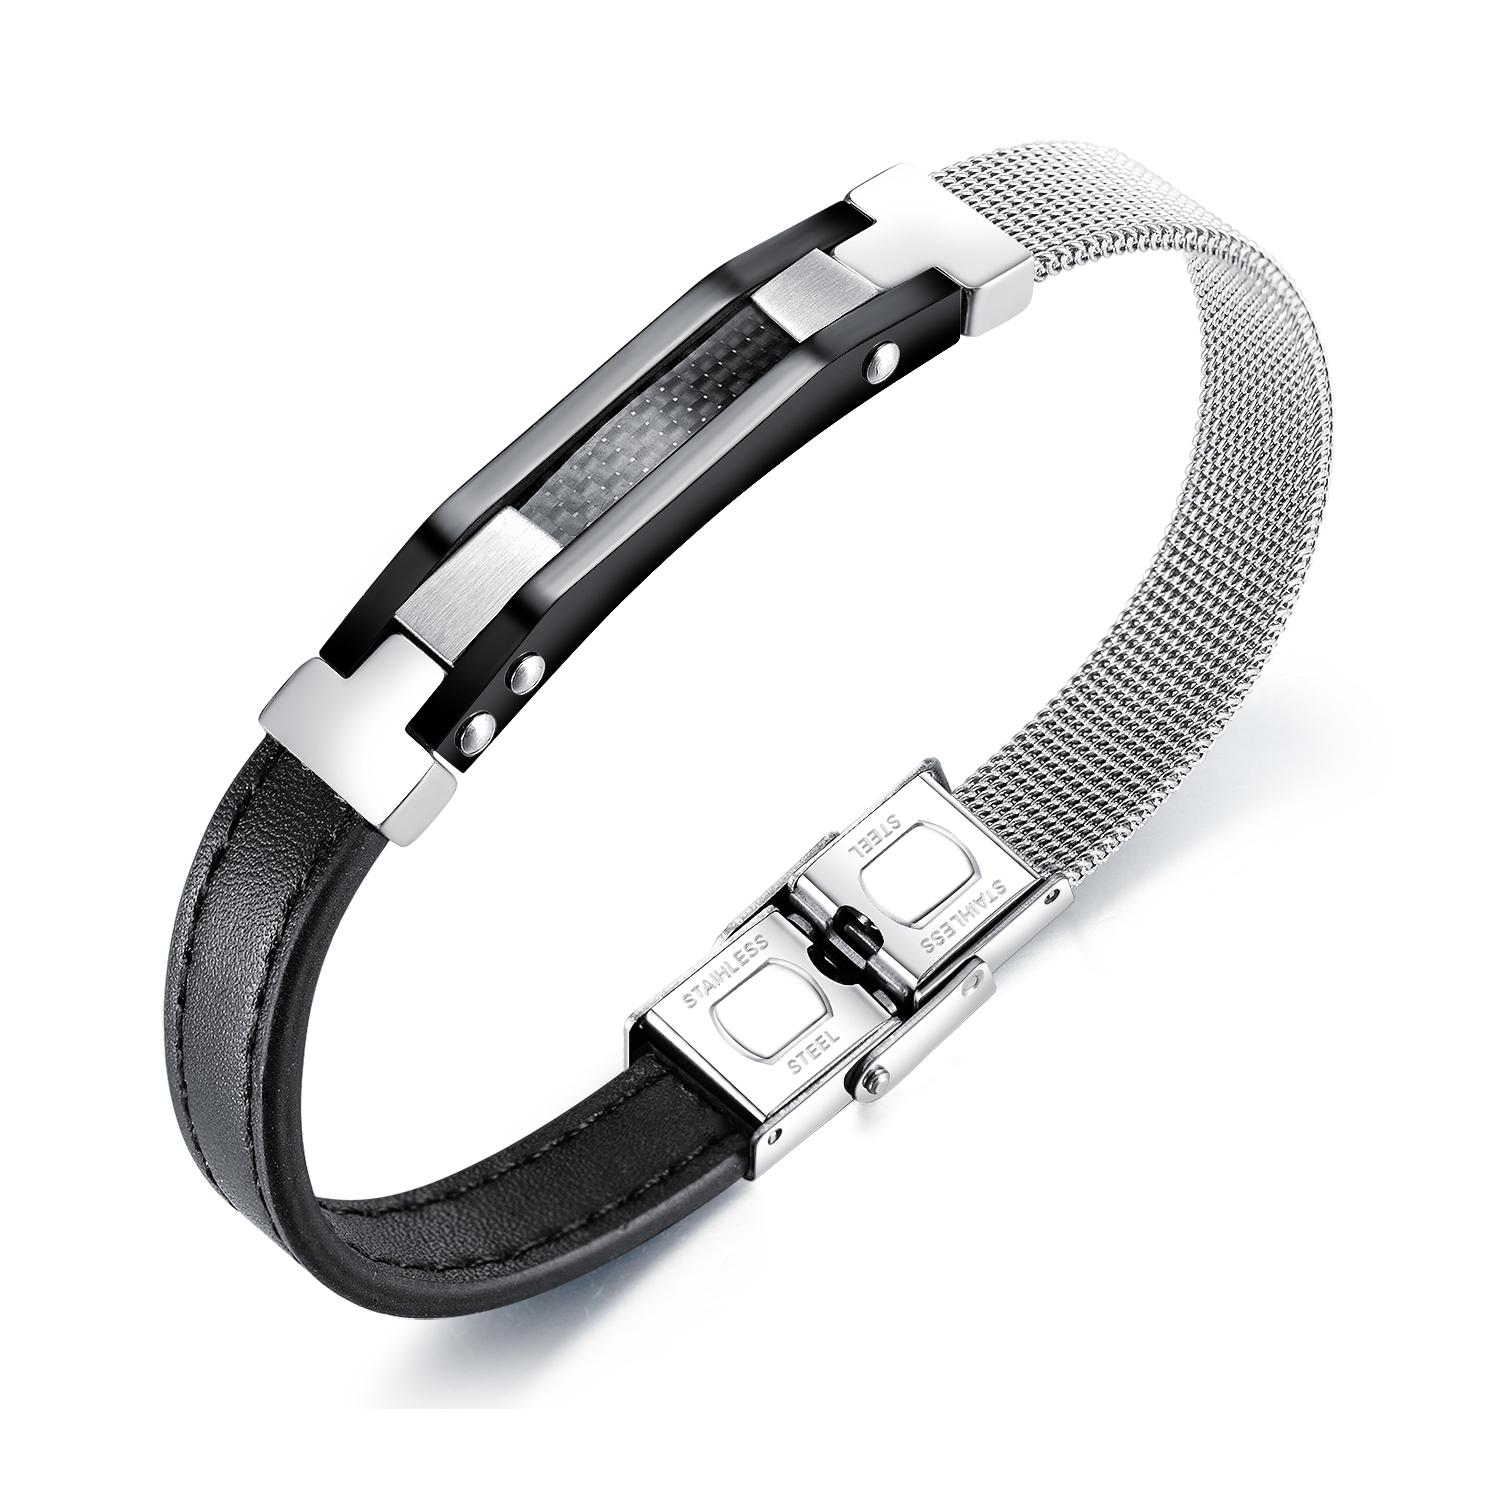 mens for bracelets black knit stainless steel bracelets PU leather Titanium hand chain mens bracelets jewelry for gifts